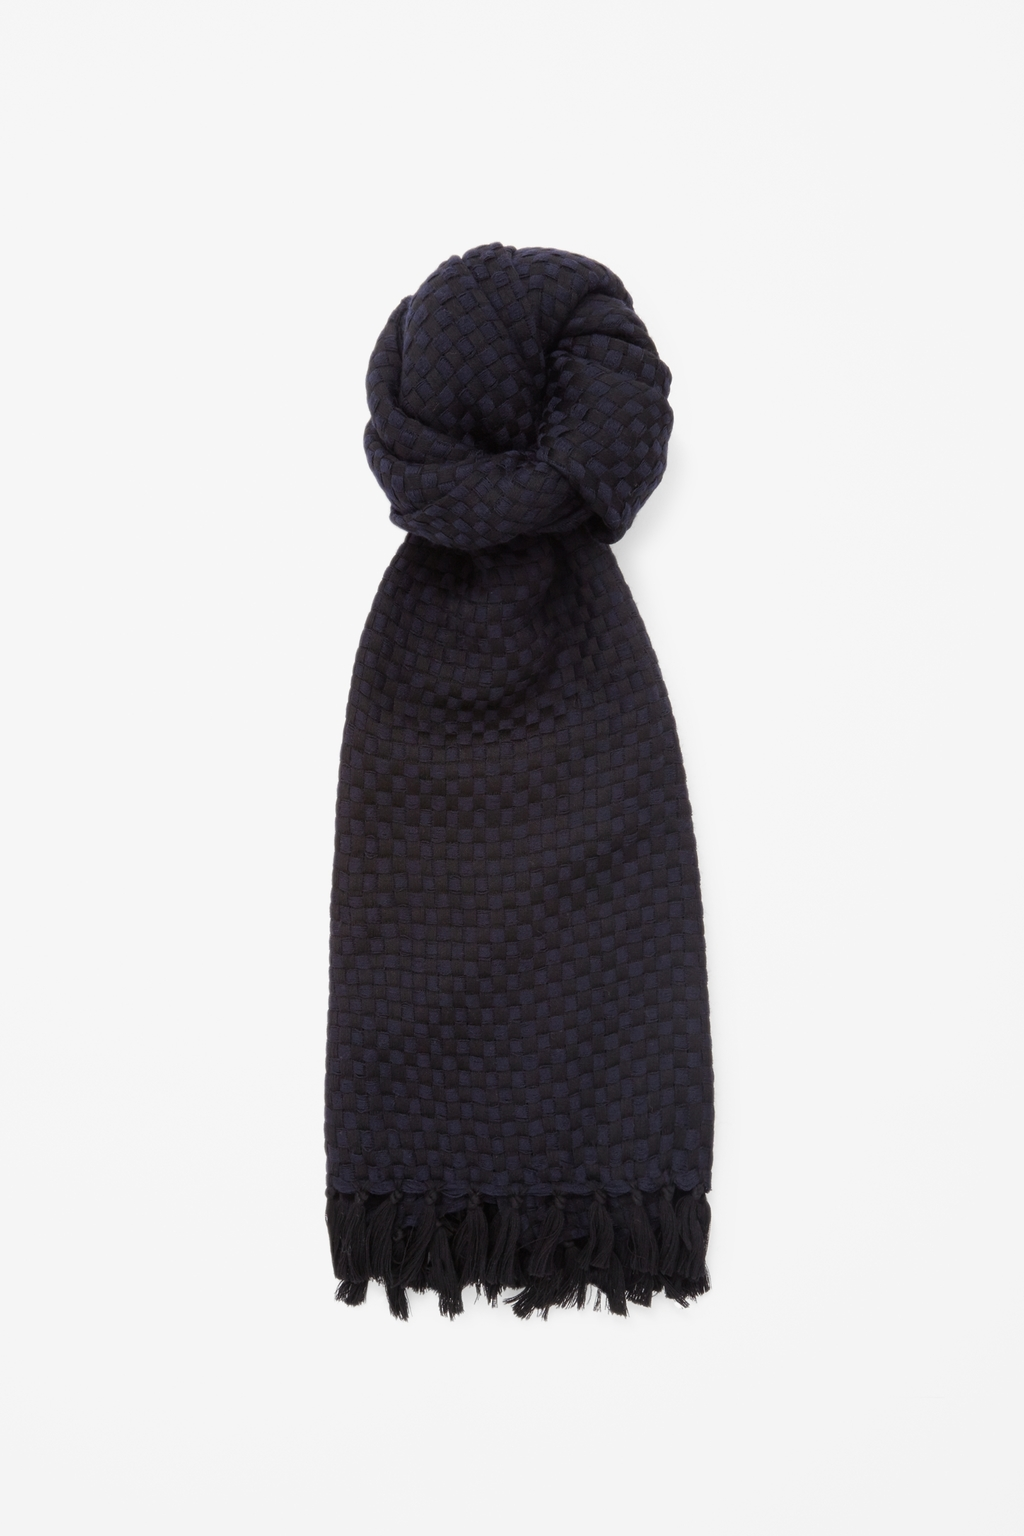 Woven Wool Scarf - predominant colour: navy; secondary colour: black; occasions: casual, creative work; type of pattern: standard; style: regular; size: standard; material: fabric; embellishment: fringing; pattern: plain; season: s/s 2015; wardrobe: basic